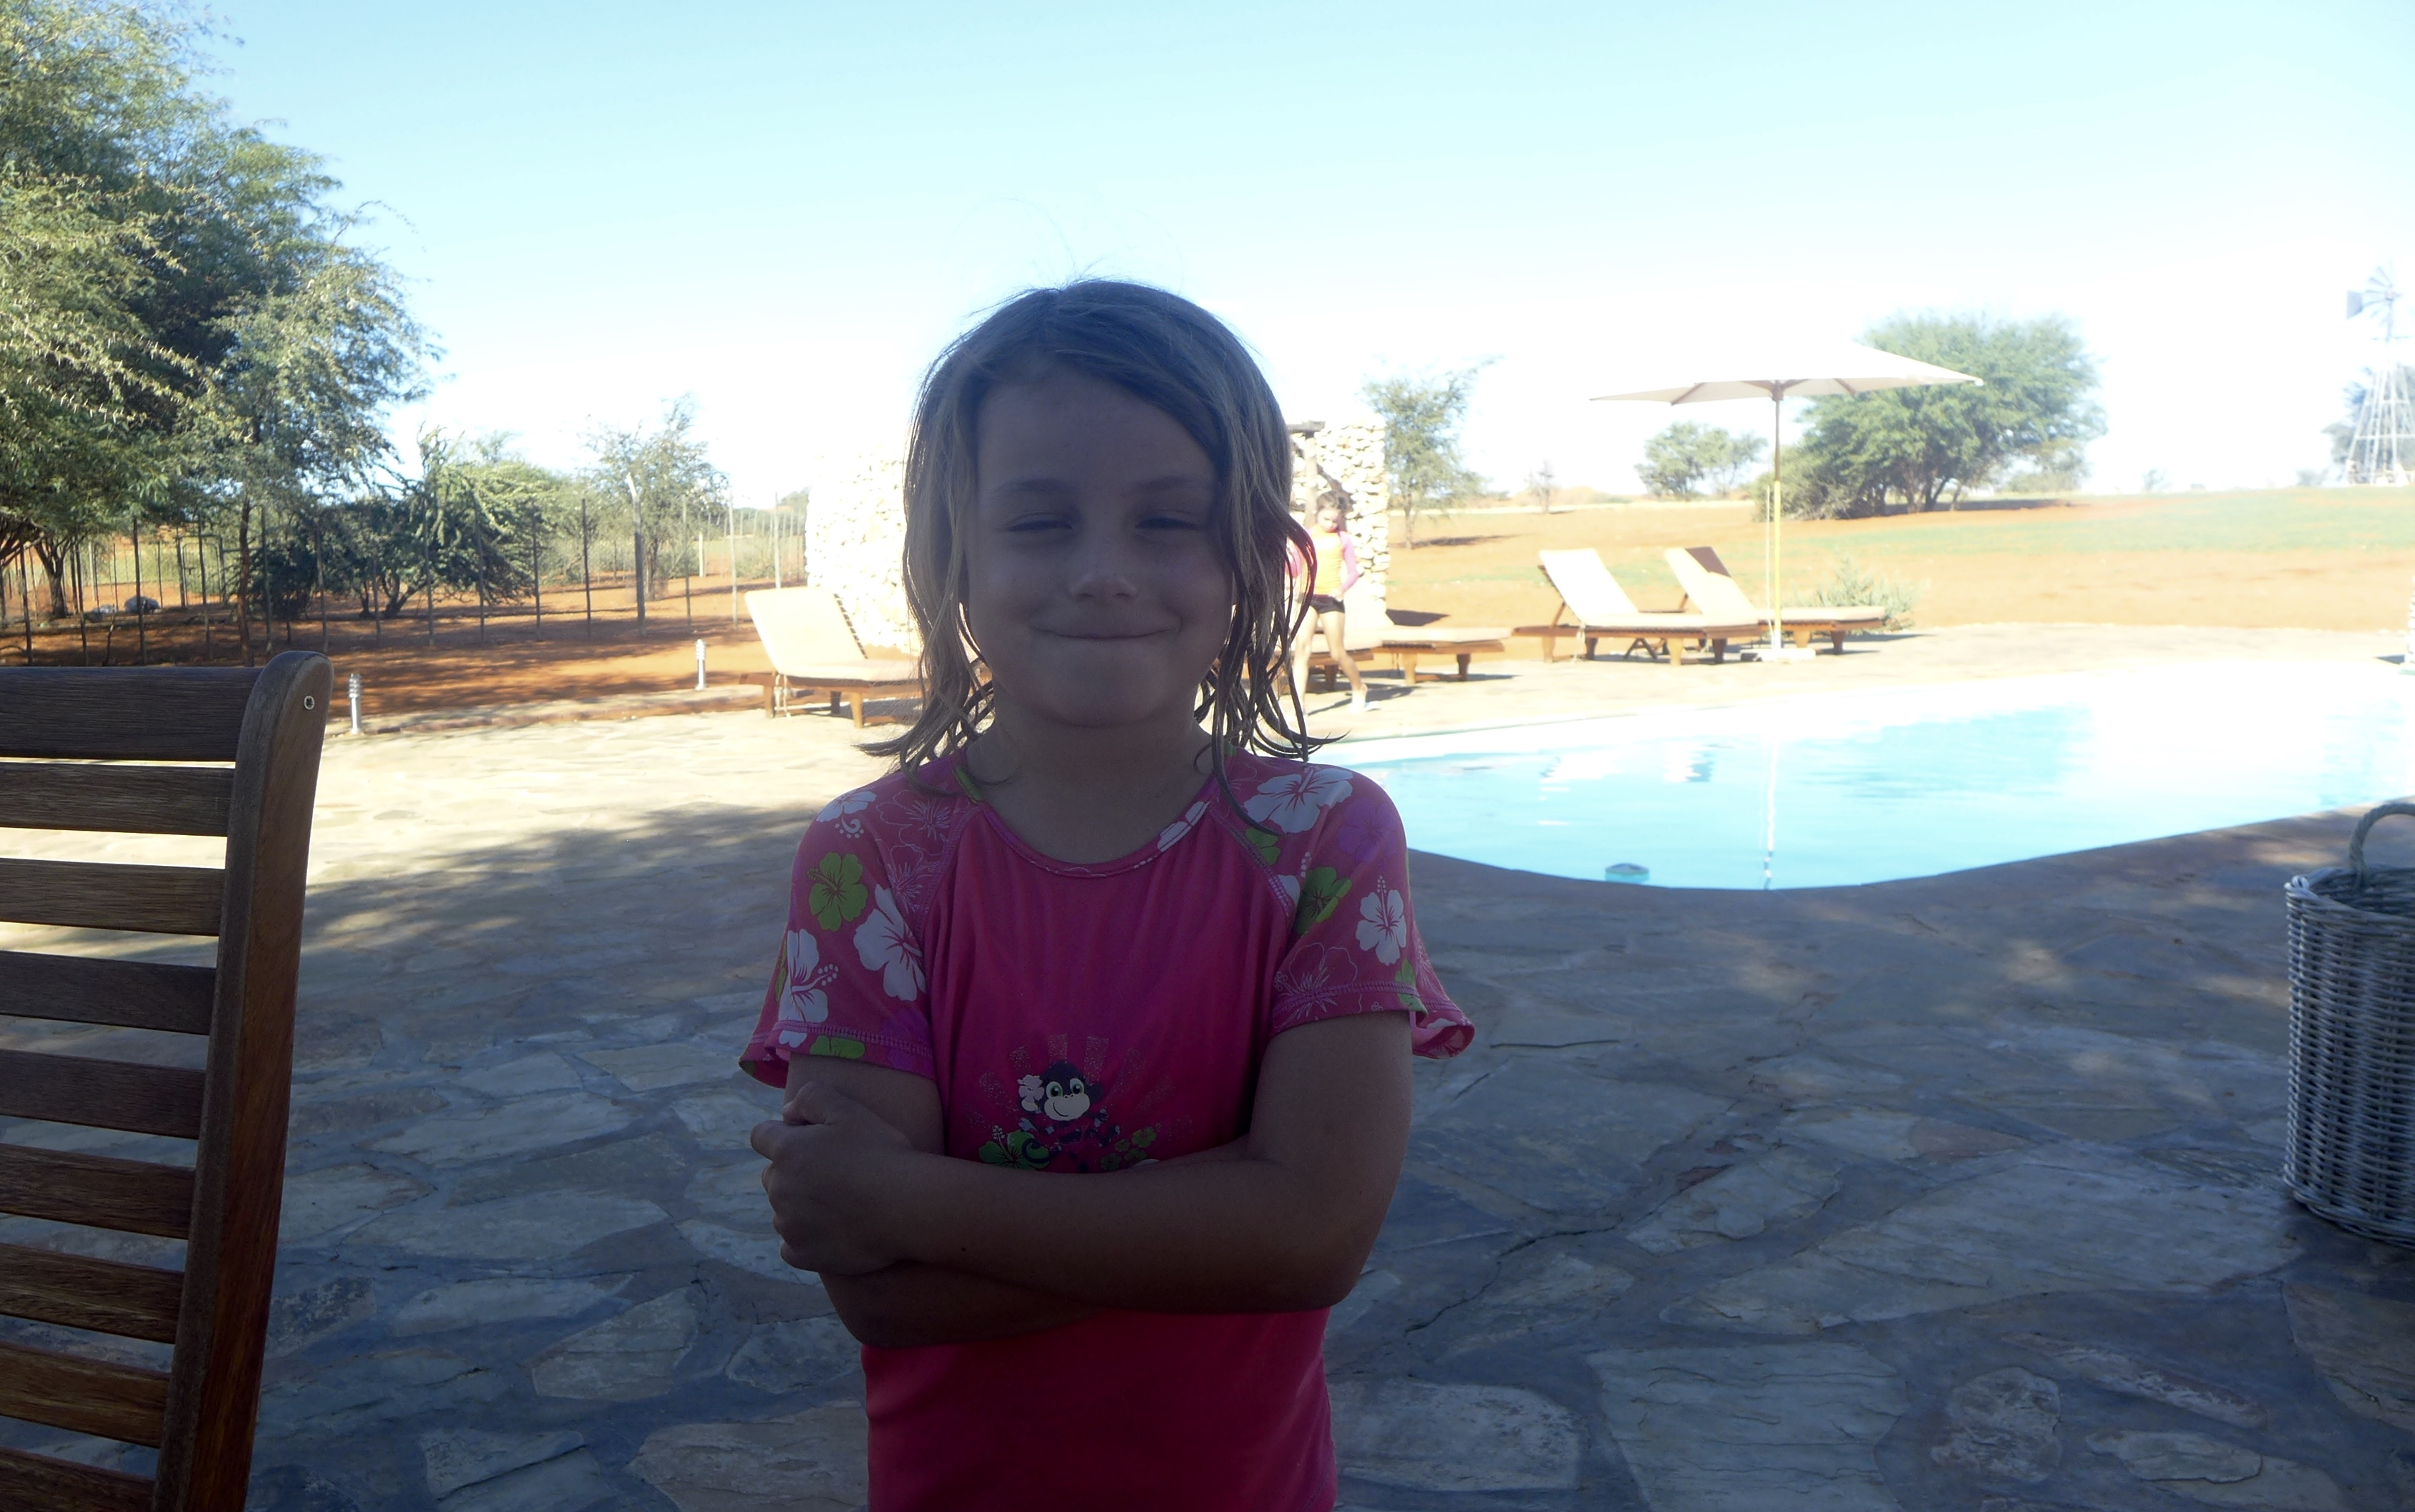 Quinn in a swimsuit stands in front of a pool with arms crossed a smirk on her face